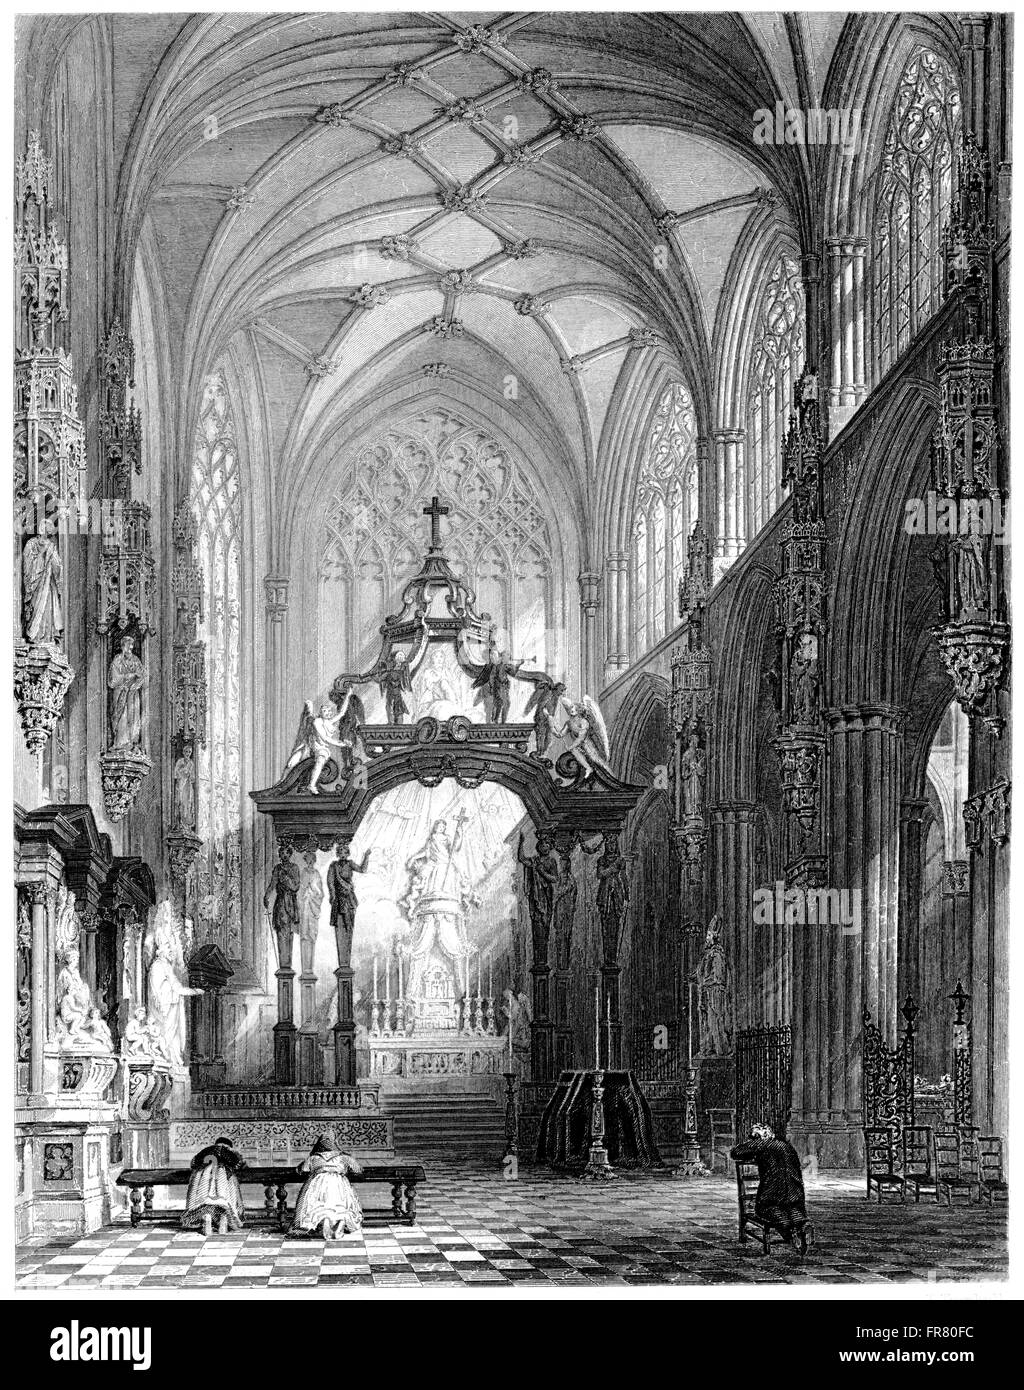 Engraving of the Chapel of St Gudule, Brussels scanned at high resolution from a book printed in 1876. Believed Stock Photo